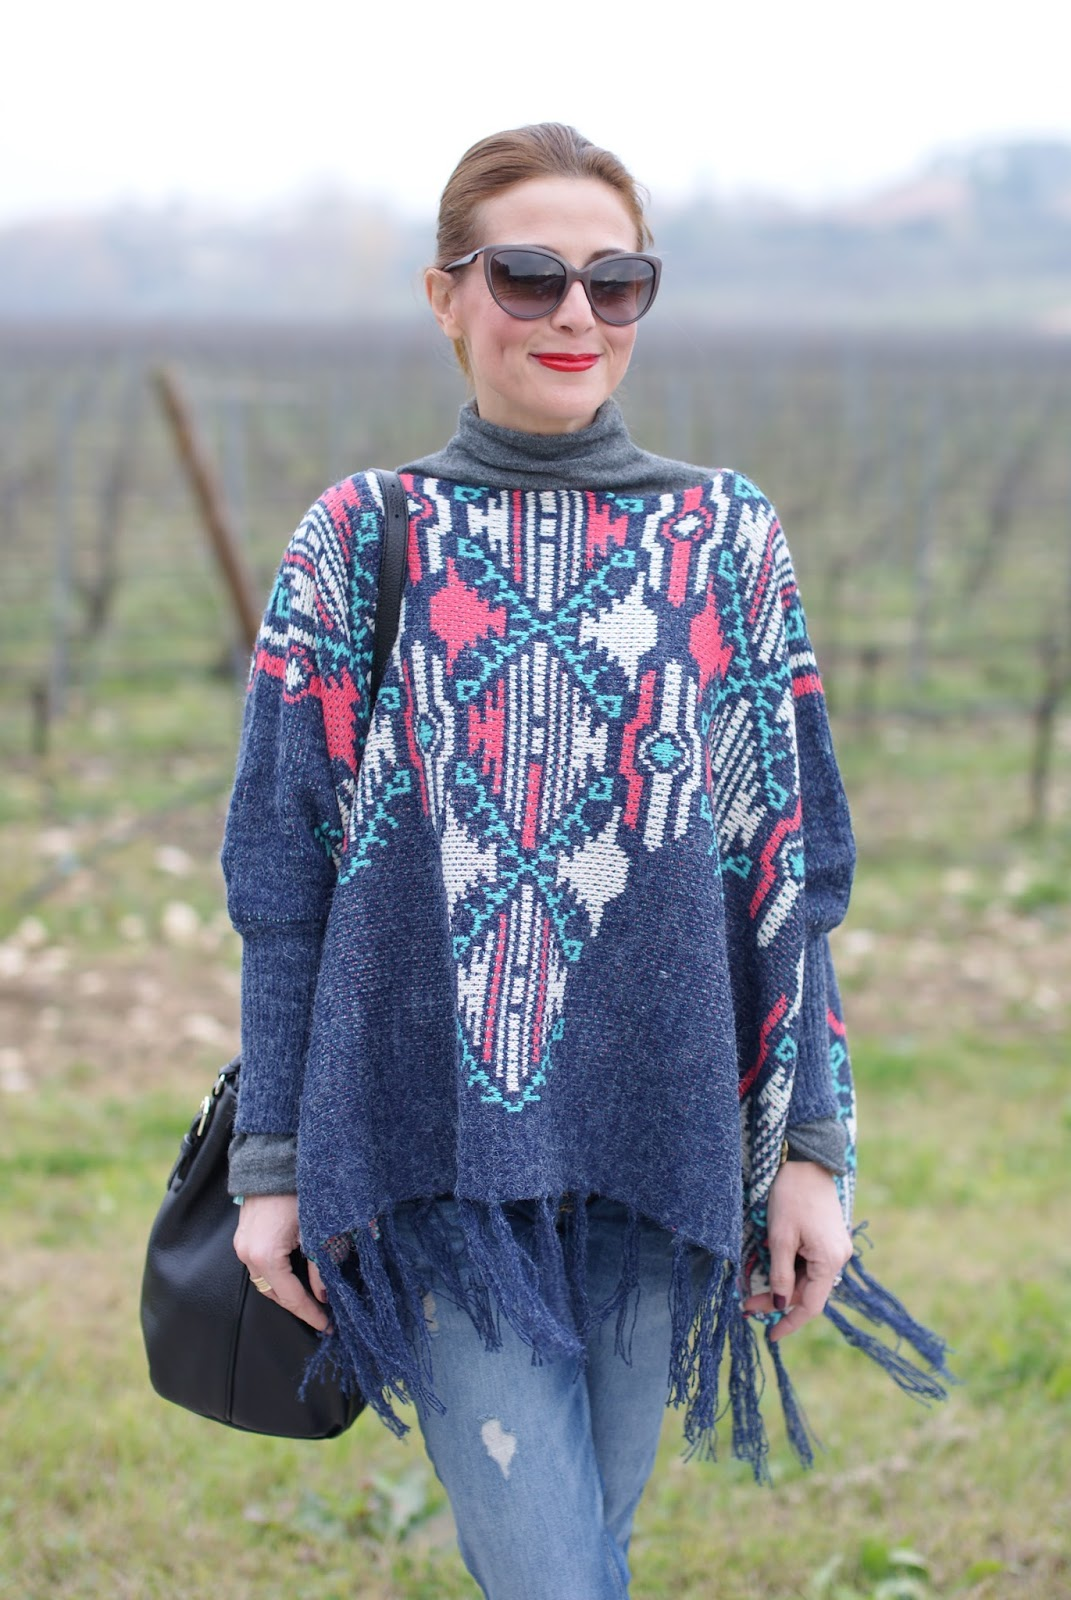 Fringed aztec poncho and boyfriend jeans for a western inspired outfit on Fashion and Cookies fashion blog, fashion blogger style